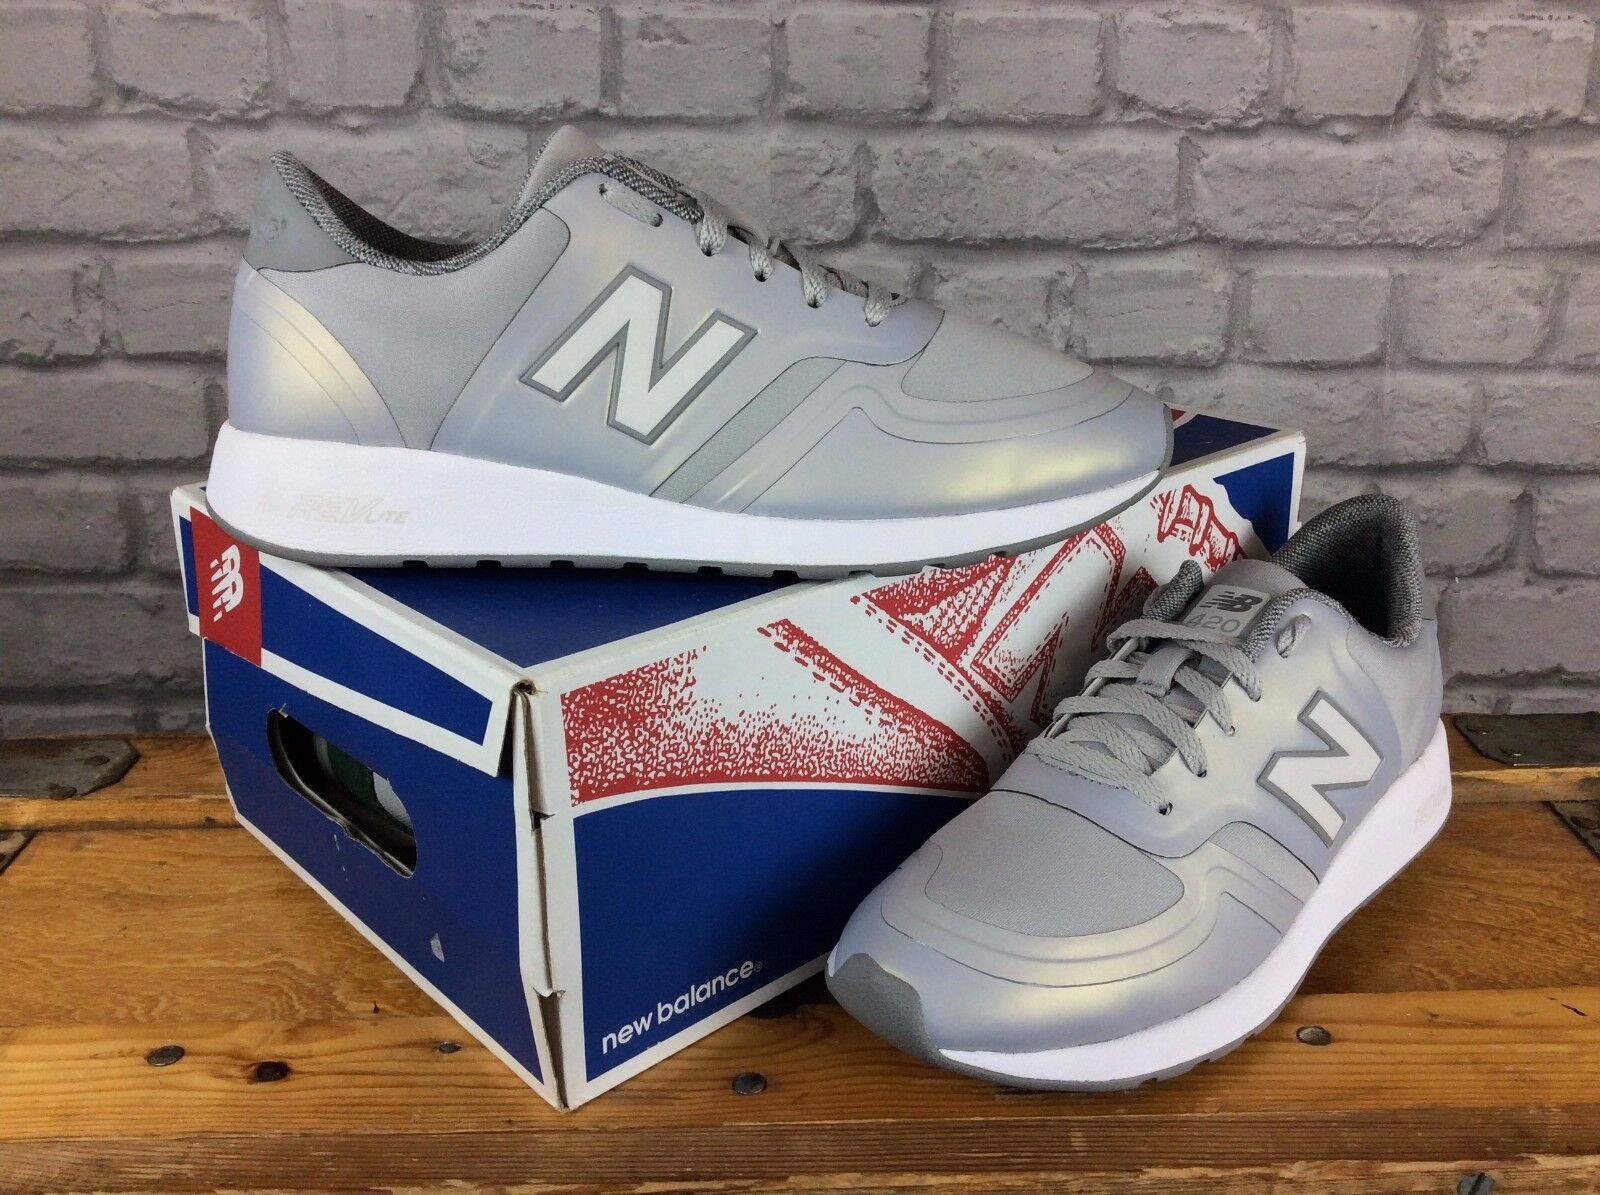 NEW BALANCE 420 LADIES UK 6 EU 39 GREY PEARL REVLITE TRAINERS REFLECTIVE